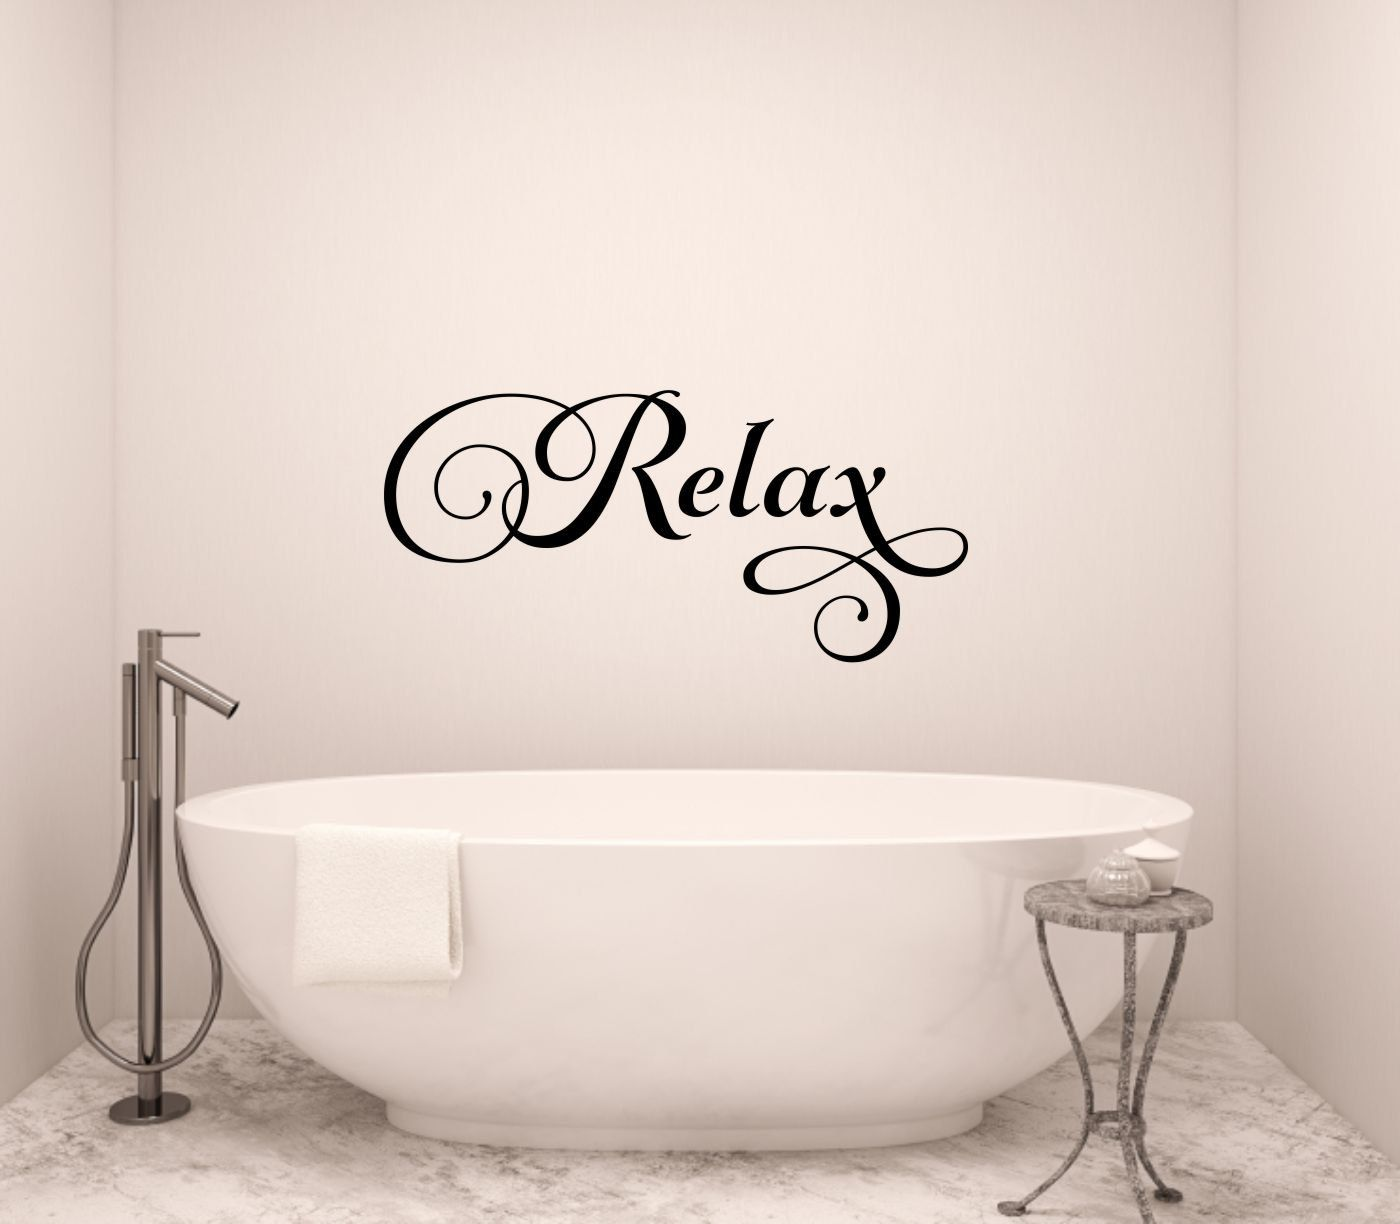 Relax Wall Decal Bathroom Wall Decal Bathroom Vinyl Decal Bathroom - Wall decals relax